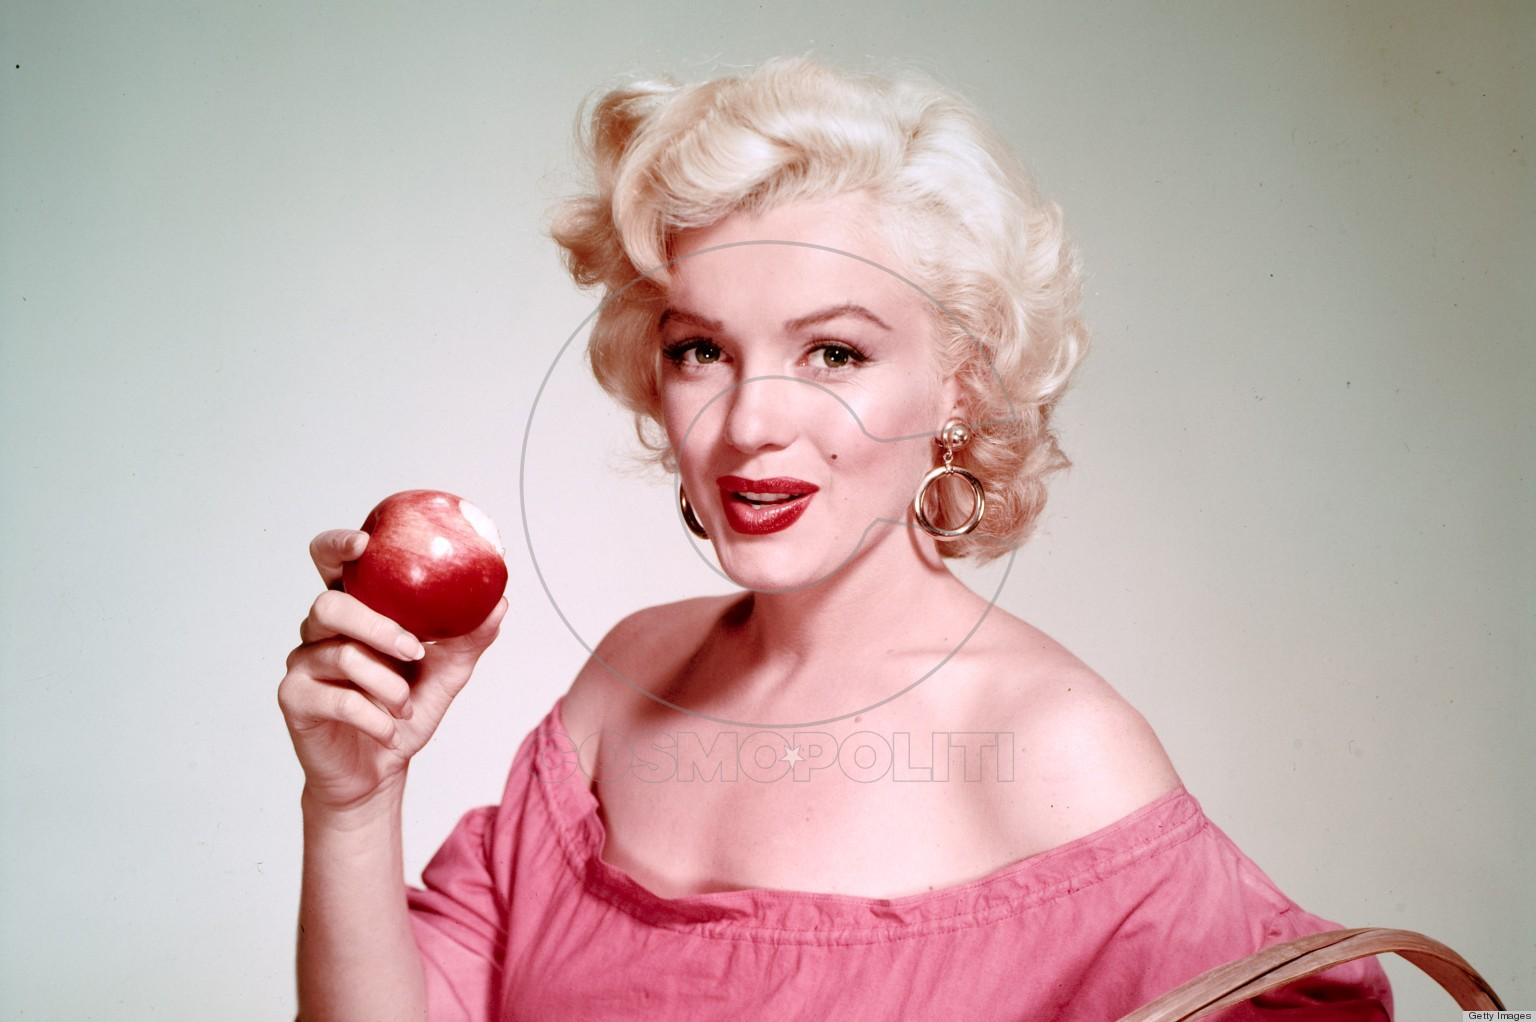 American actress Marilyn Monroe (1926 - 1962) with a basket of apples, circa 1952. (Photo by Nickolas Muray/George Eastman House/Getty Images)